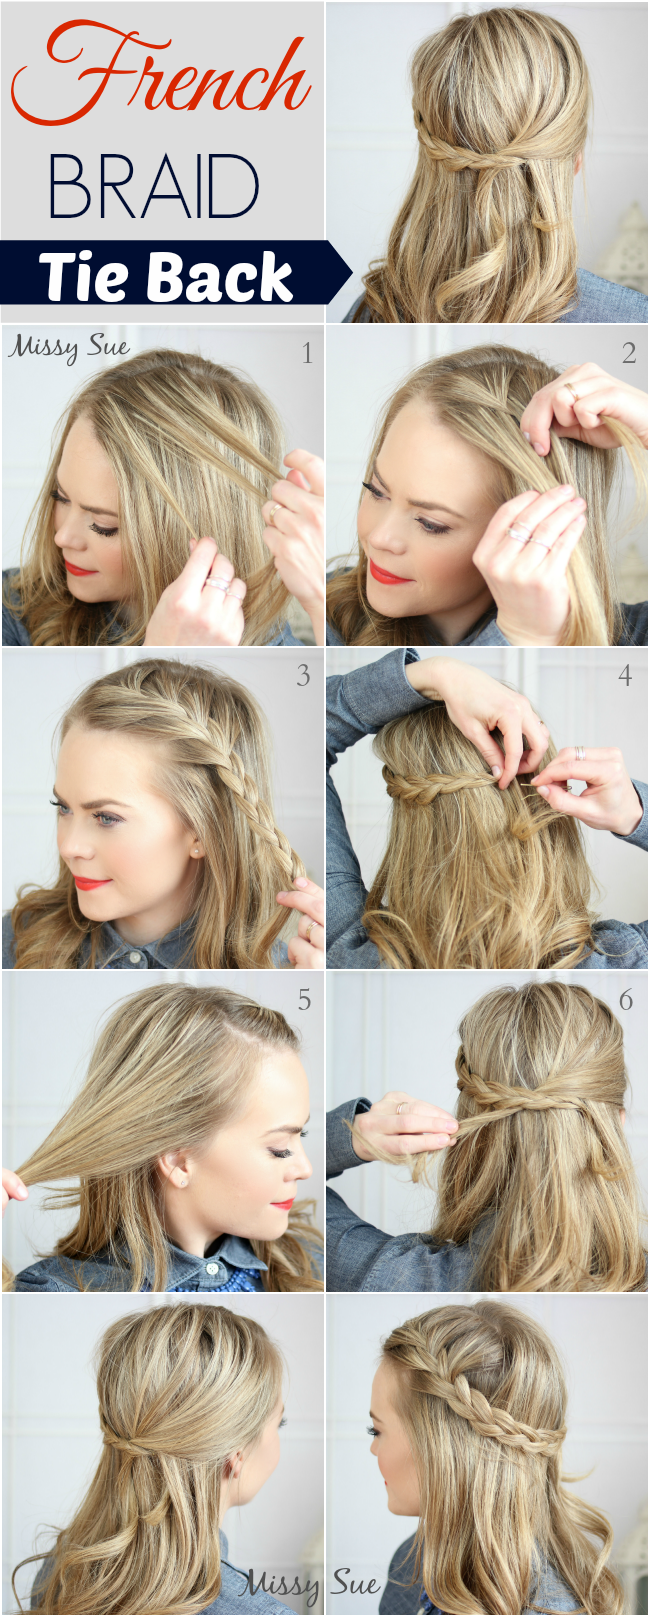 Original Runway-Inspired DIY Braided Hairstyle